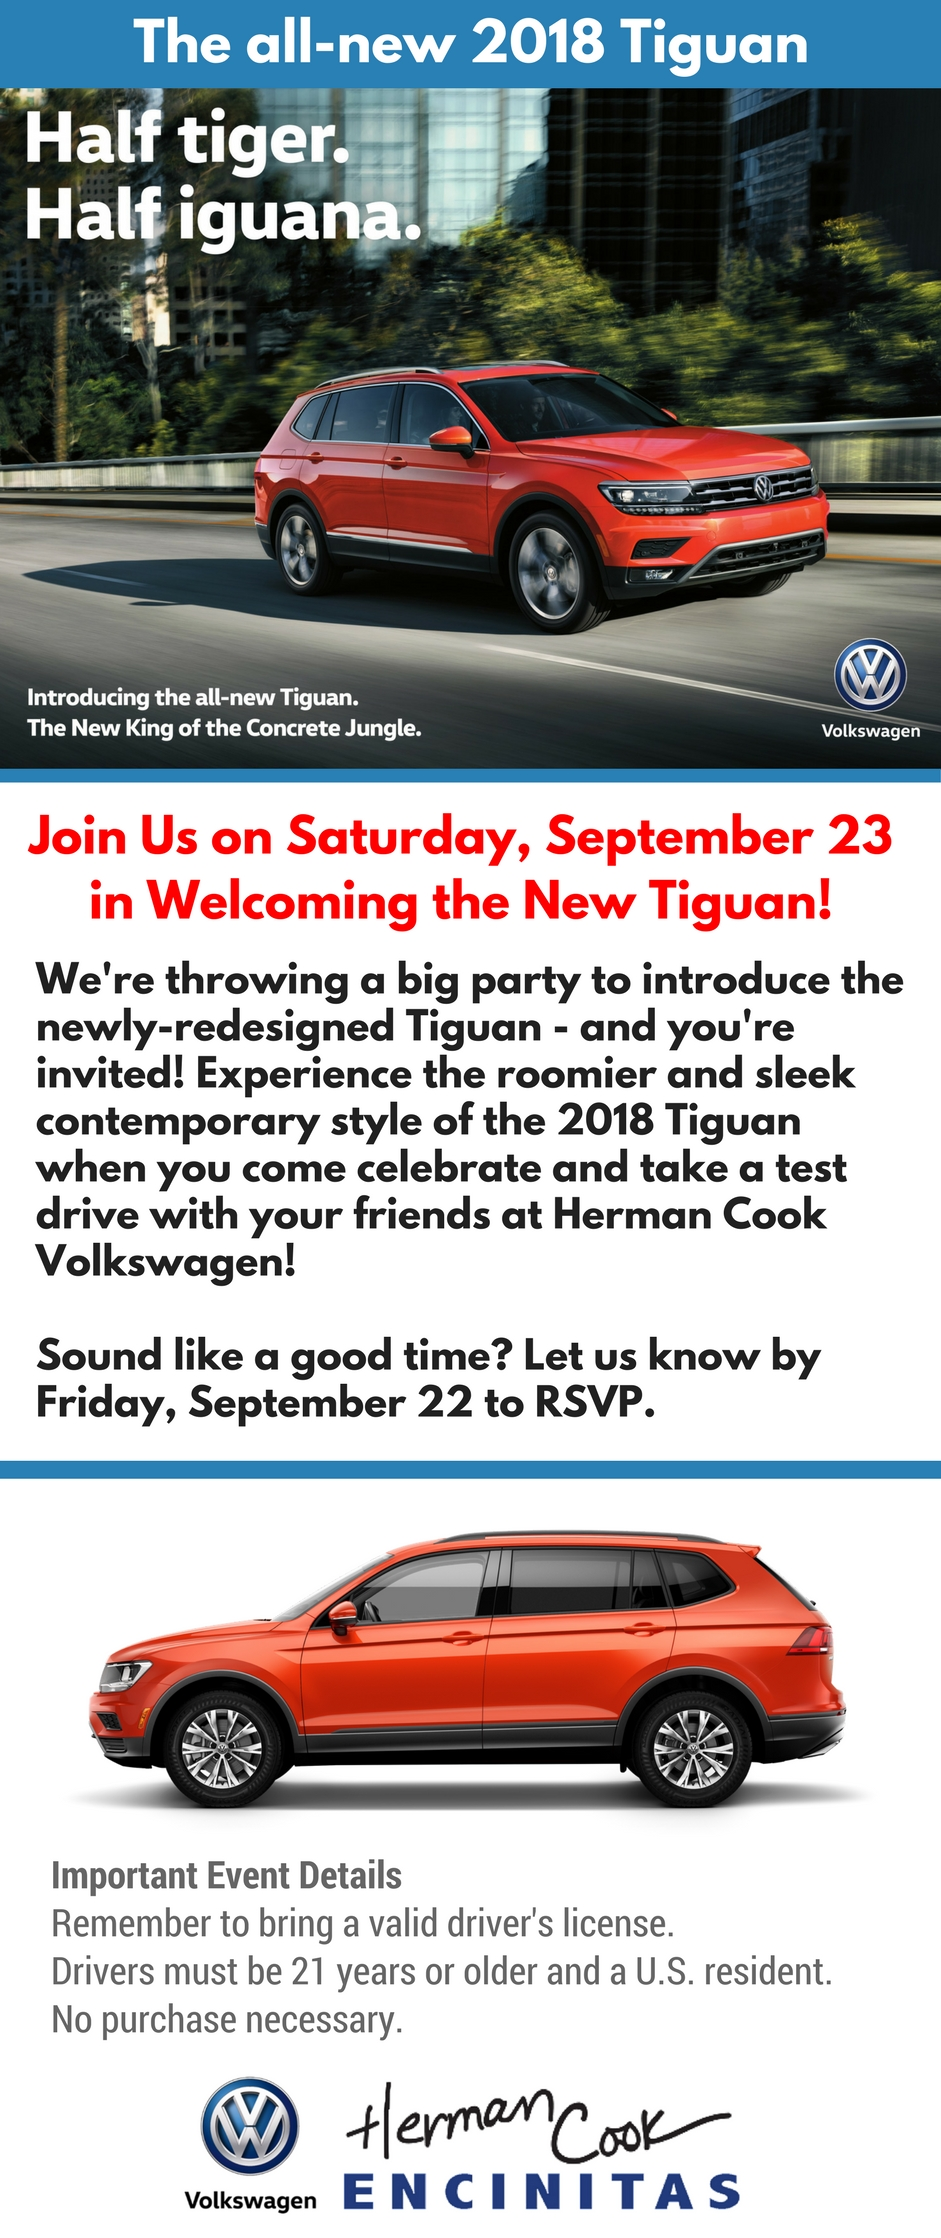 2018 Tiguan Launch Party September 23, 2017